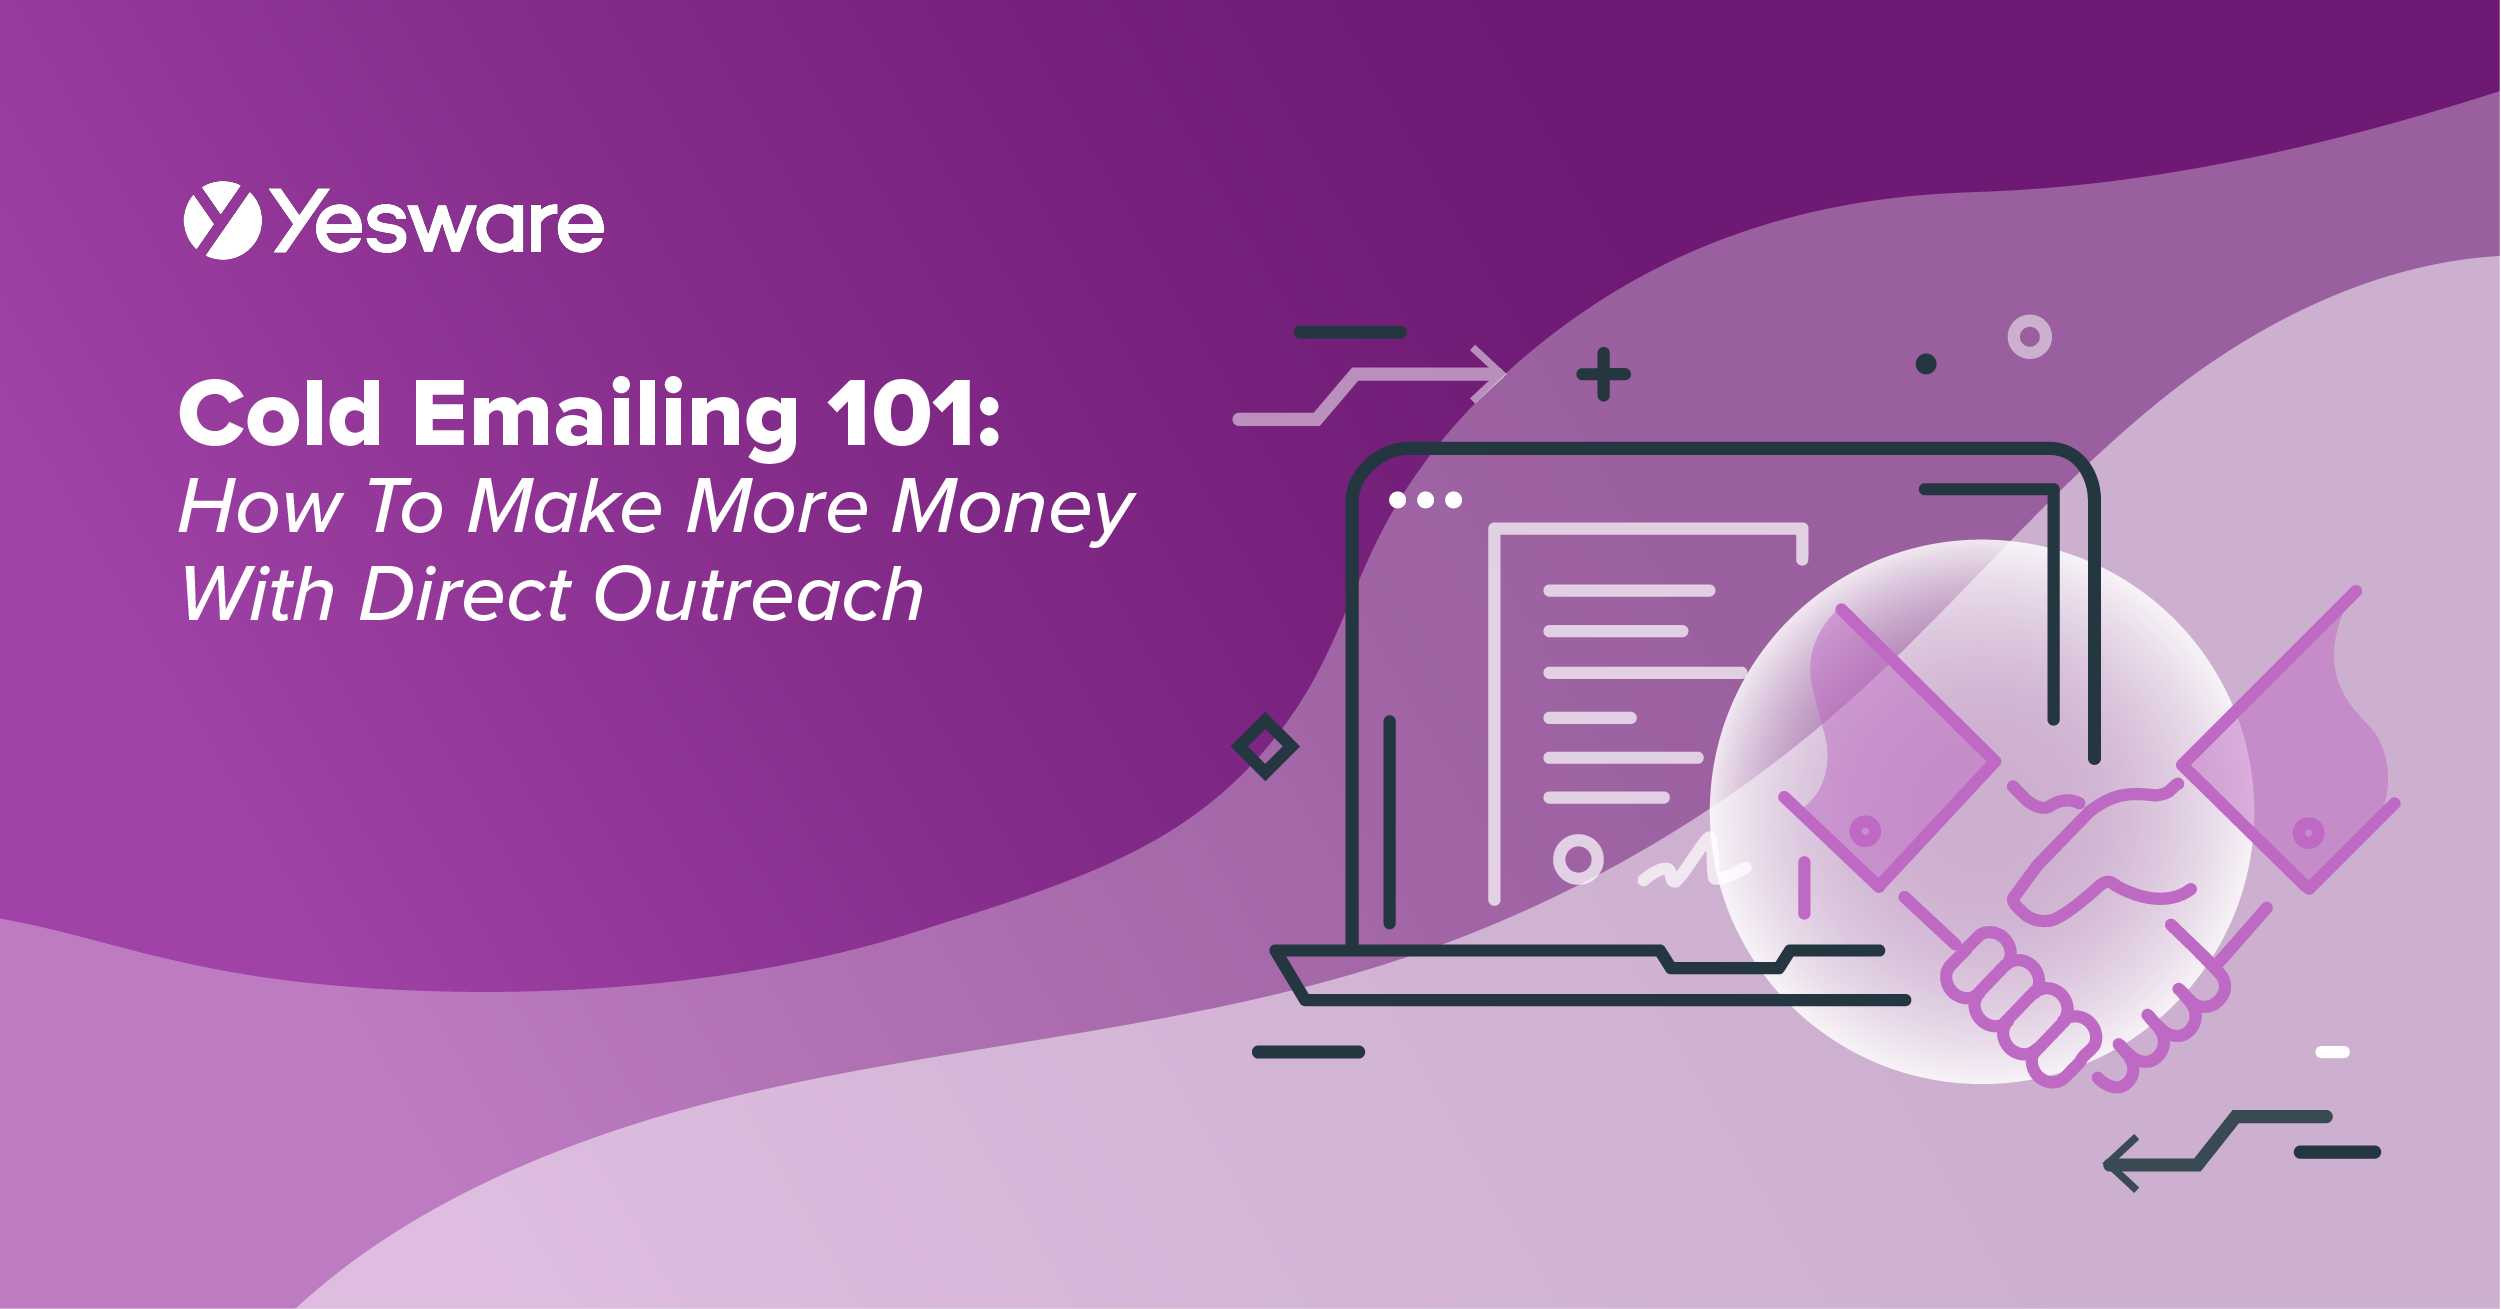 Cold Emailing 101: How To Make More Money With Direct Outreach